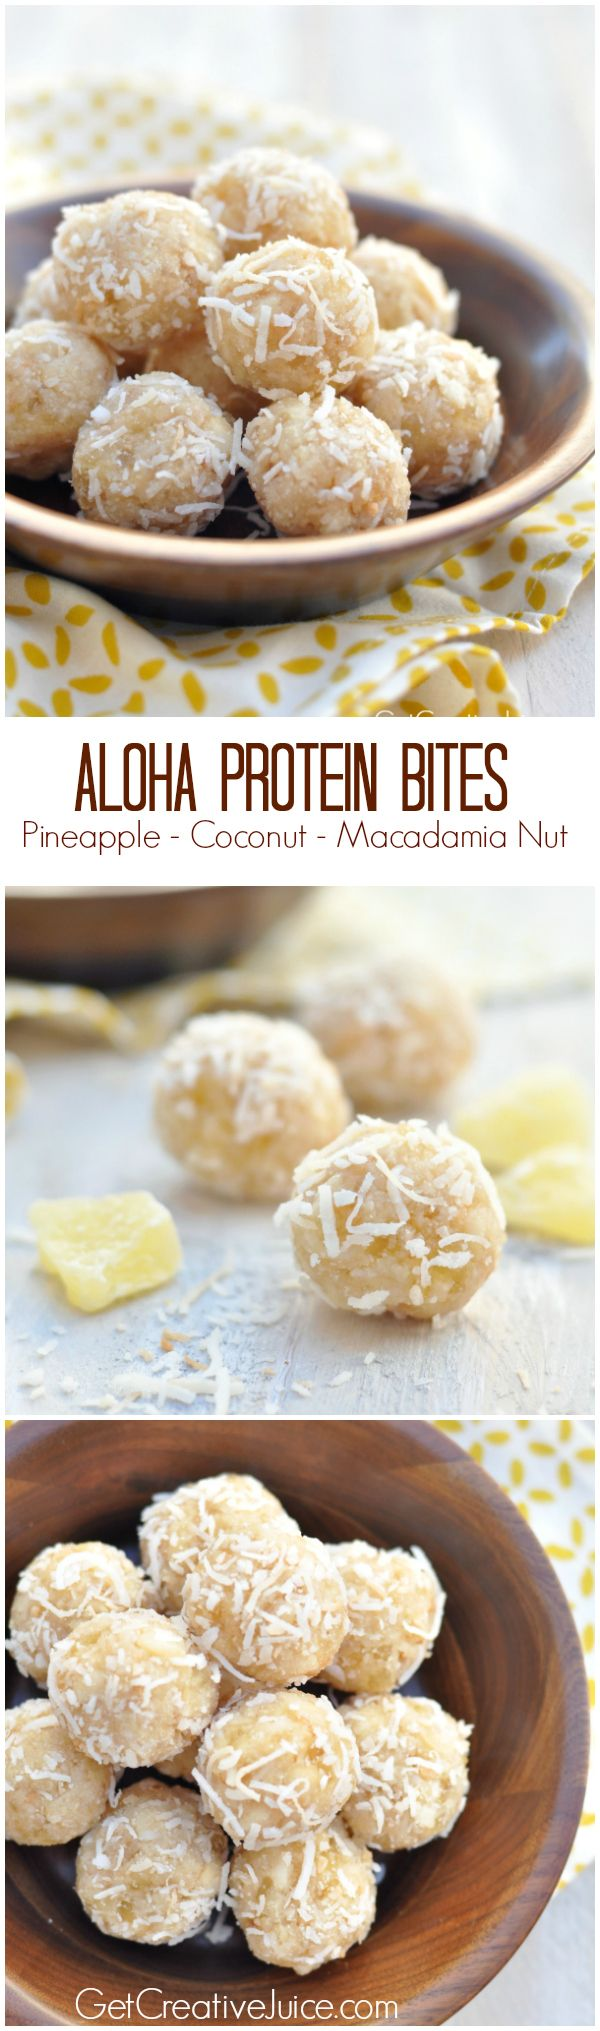 Aloha Protein Bites - Pineapple coconut and macadamia nut with vegan protein powder